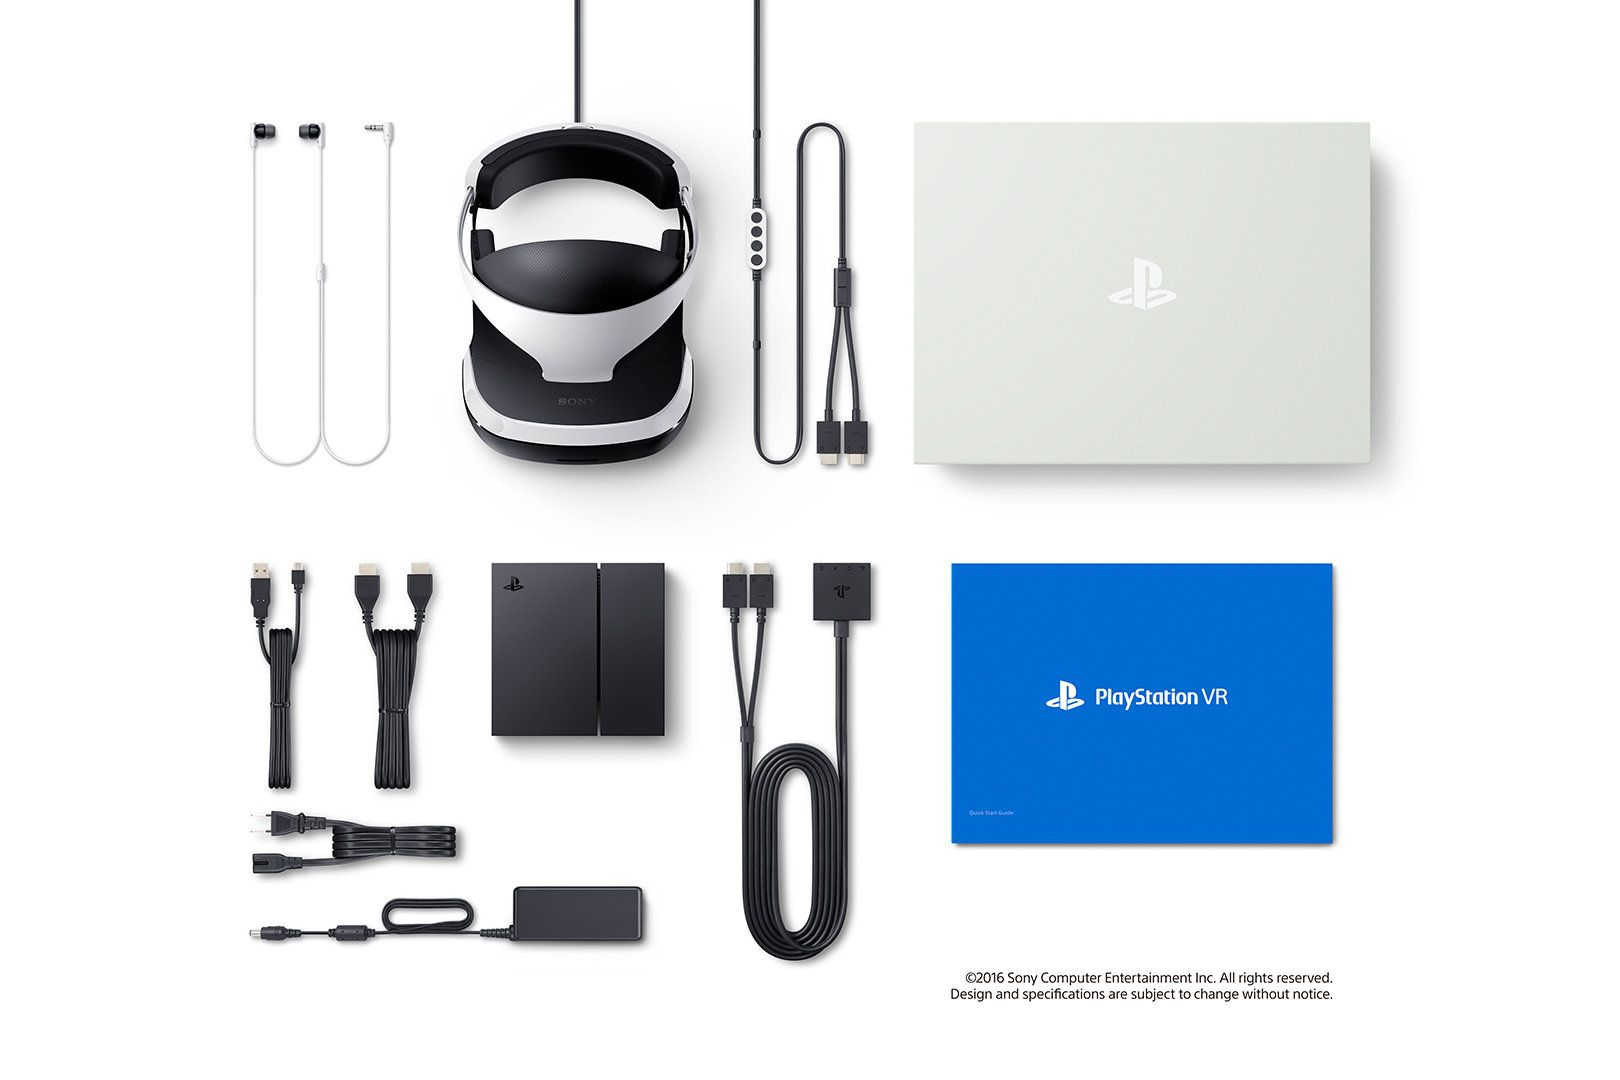 What's in the PlayStation VR box?